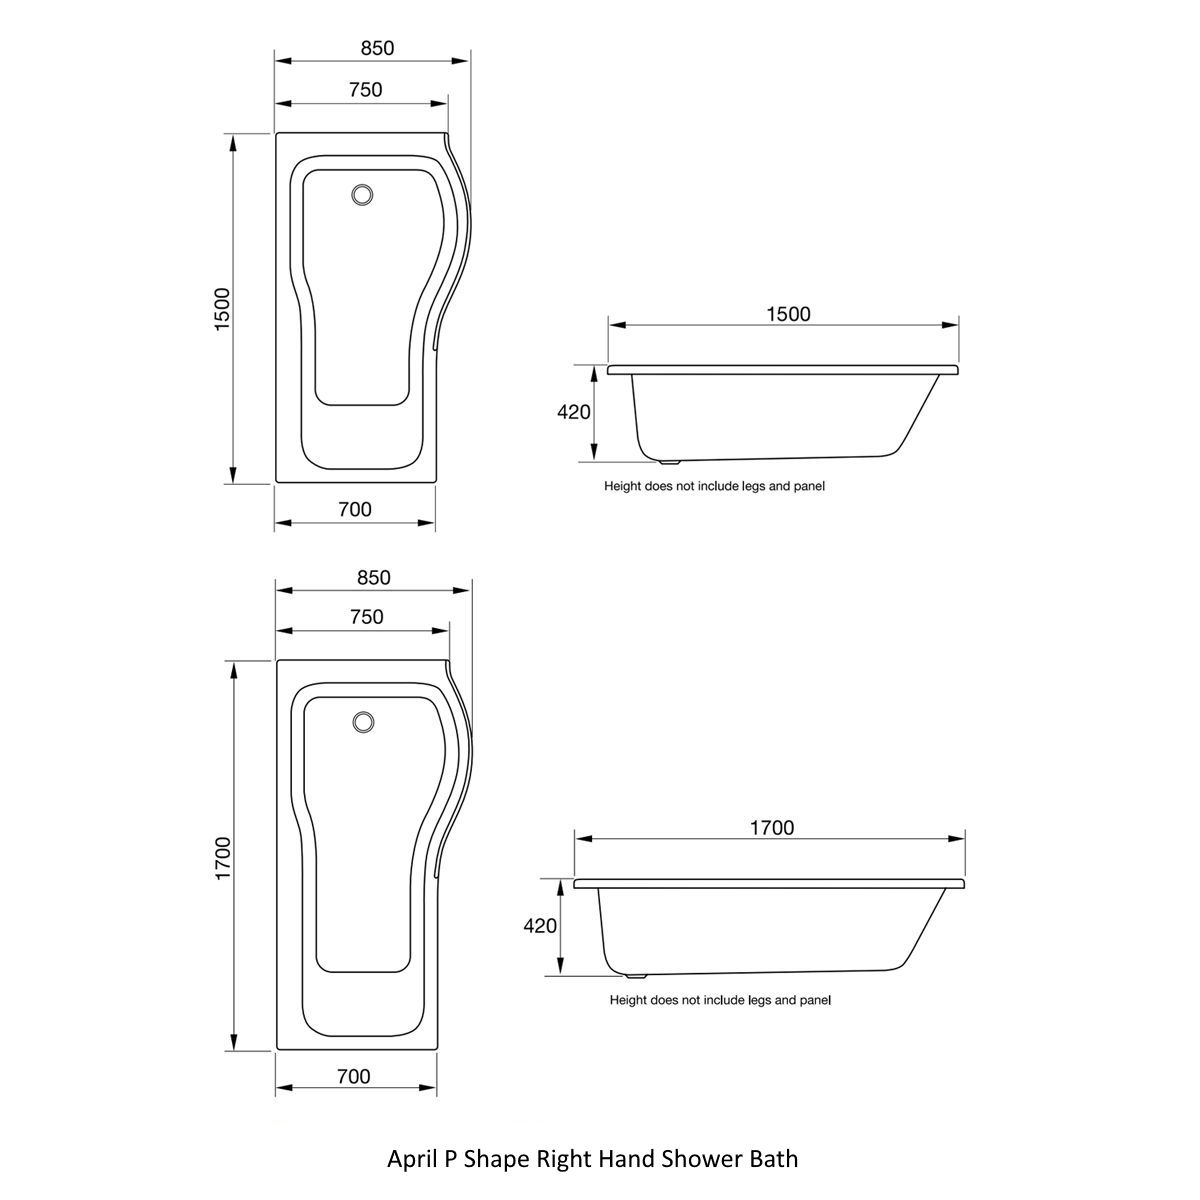 April P Shape Right Hand Shower Bath